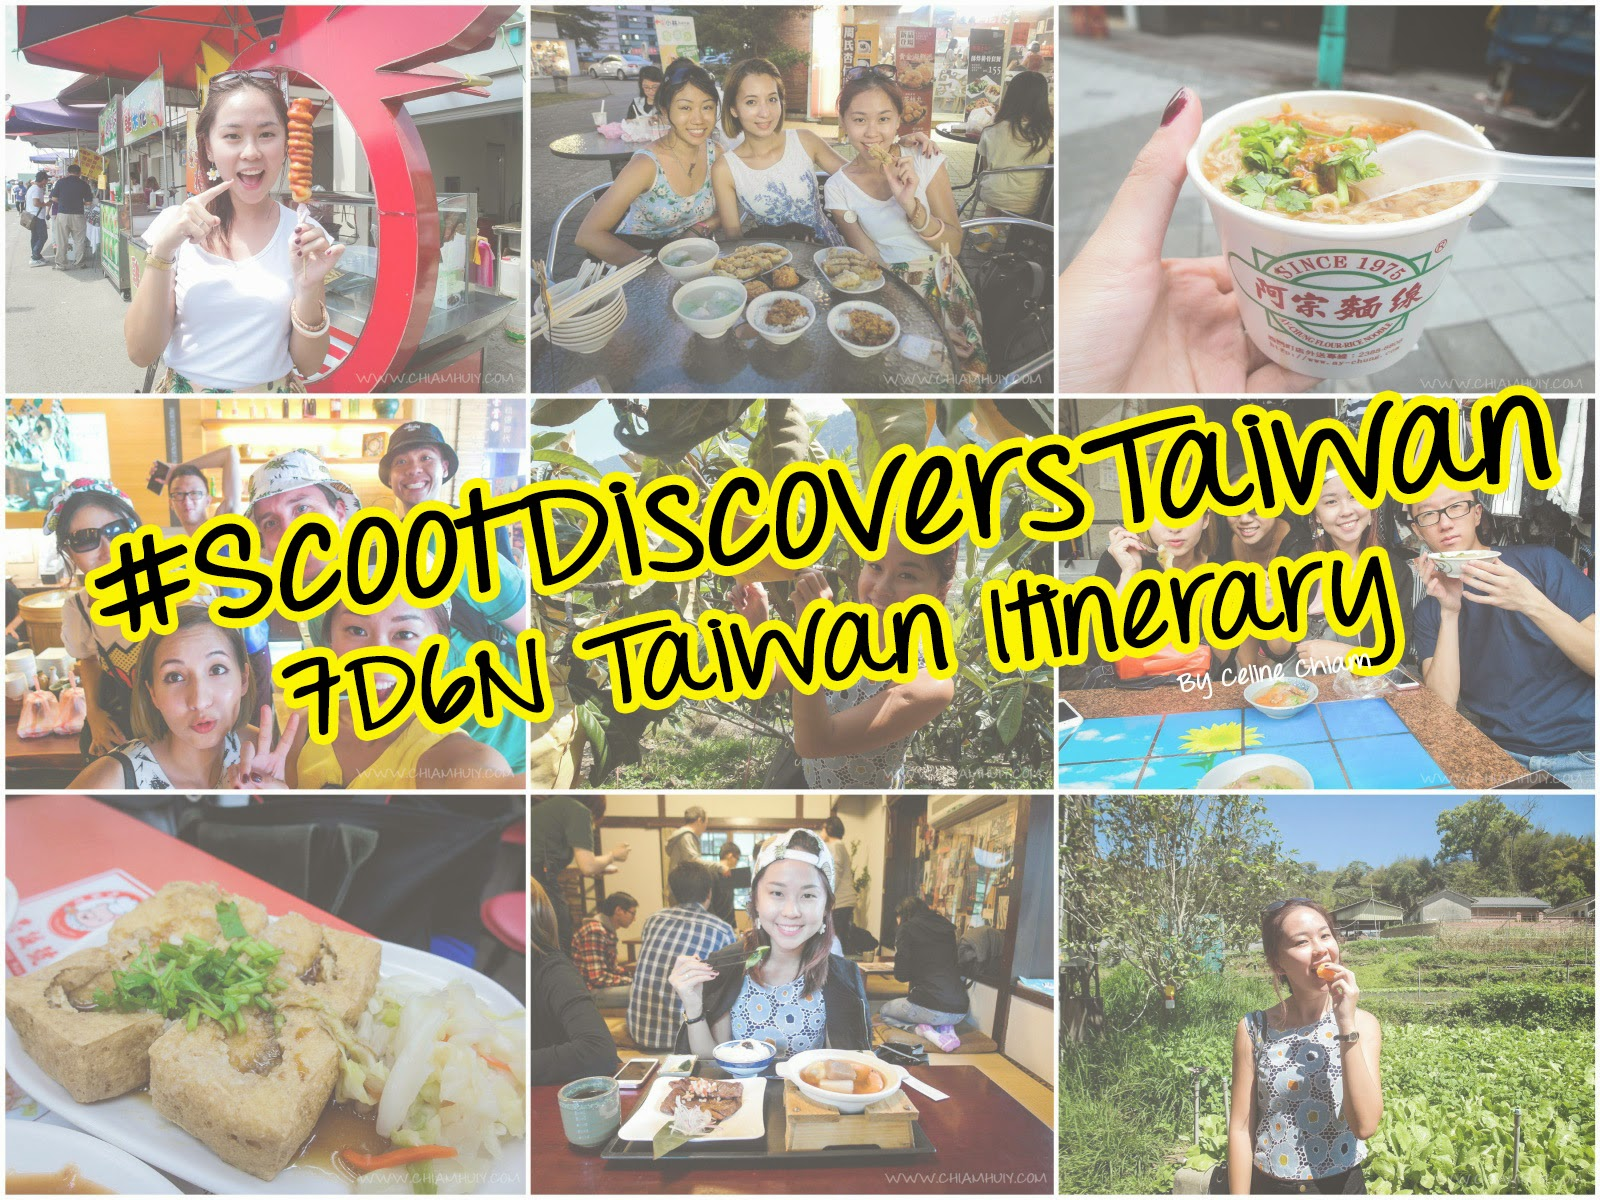 7d6n travel itinerary in taiwan scooting taiwan celine chiam if you have been following me on my instagram you would have probably known by now that i was on a taiwan trip instagrams caption has its limits so there sciox Choice Image